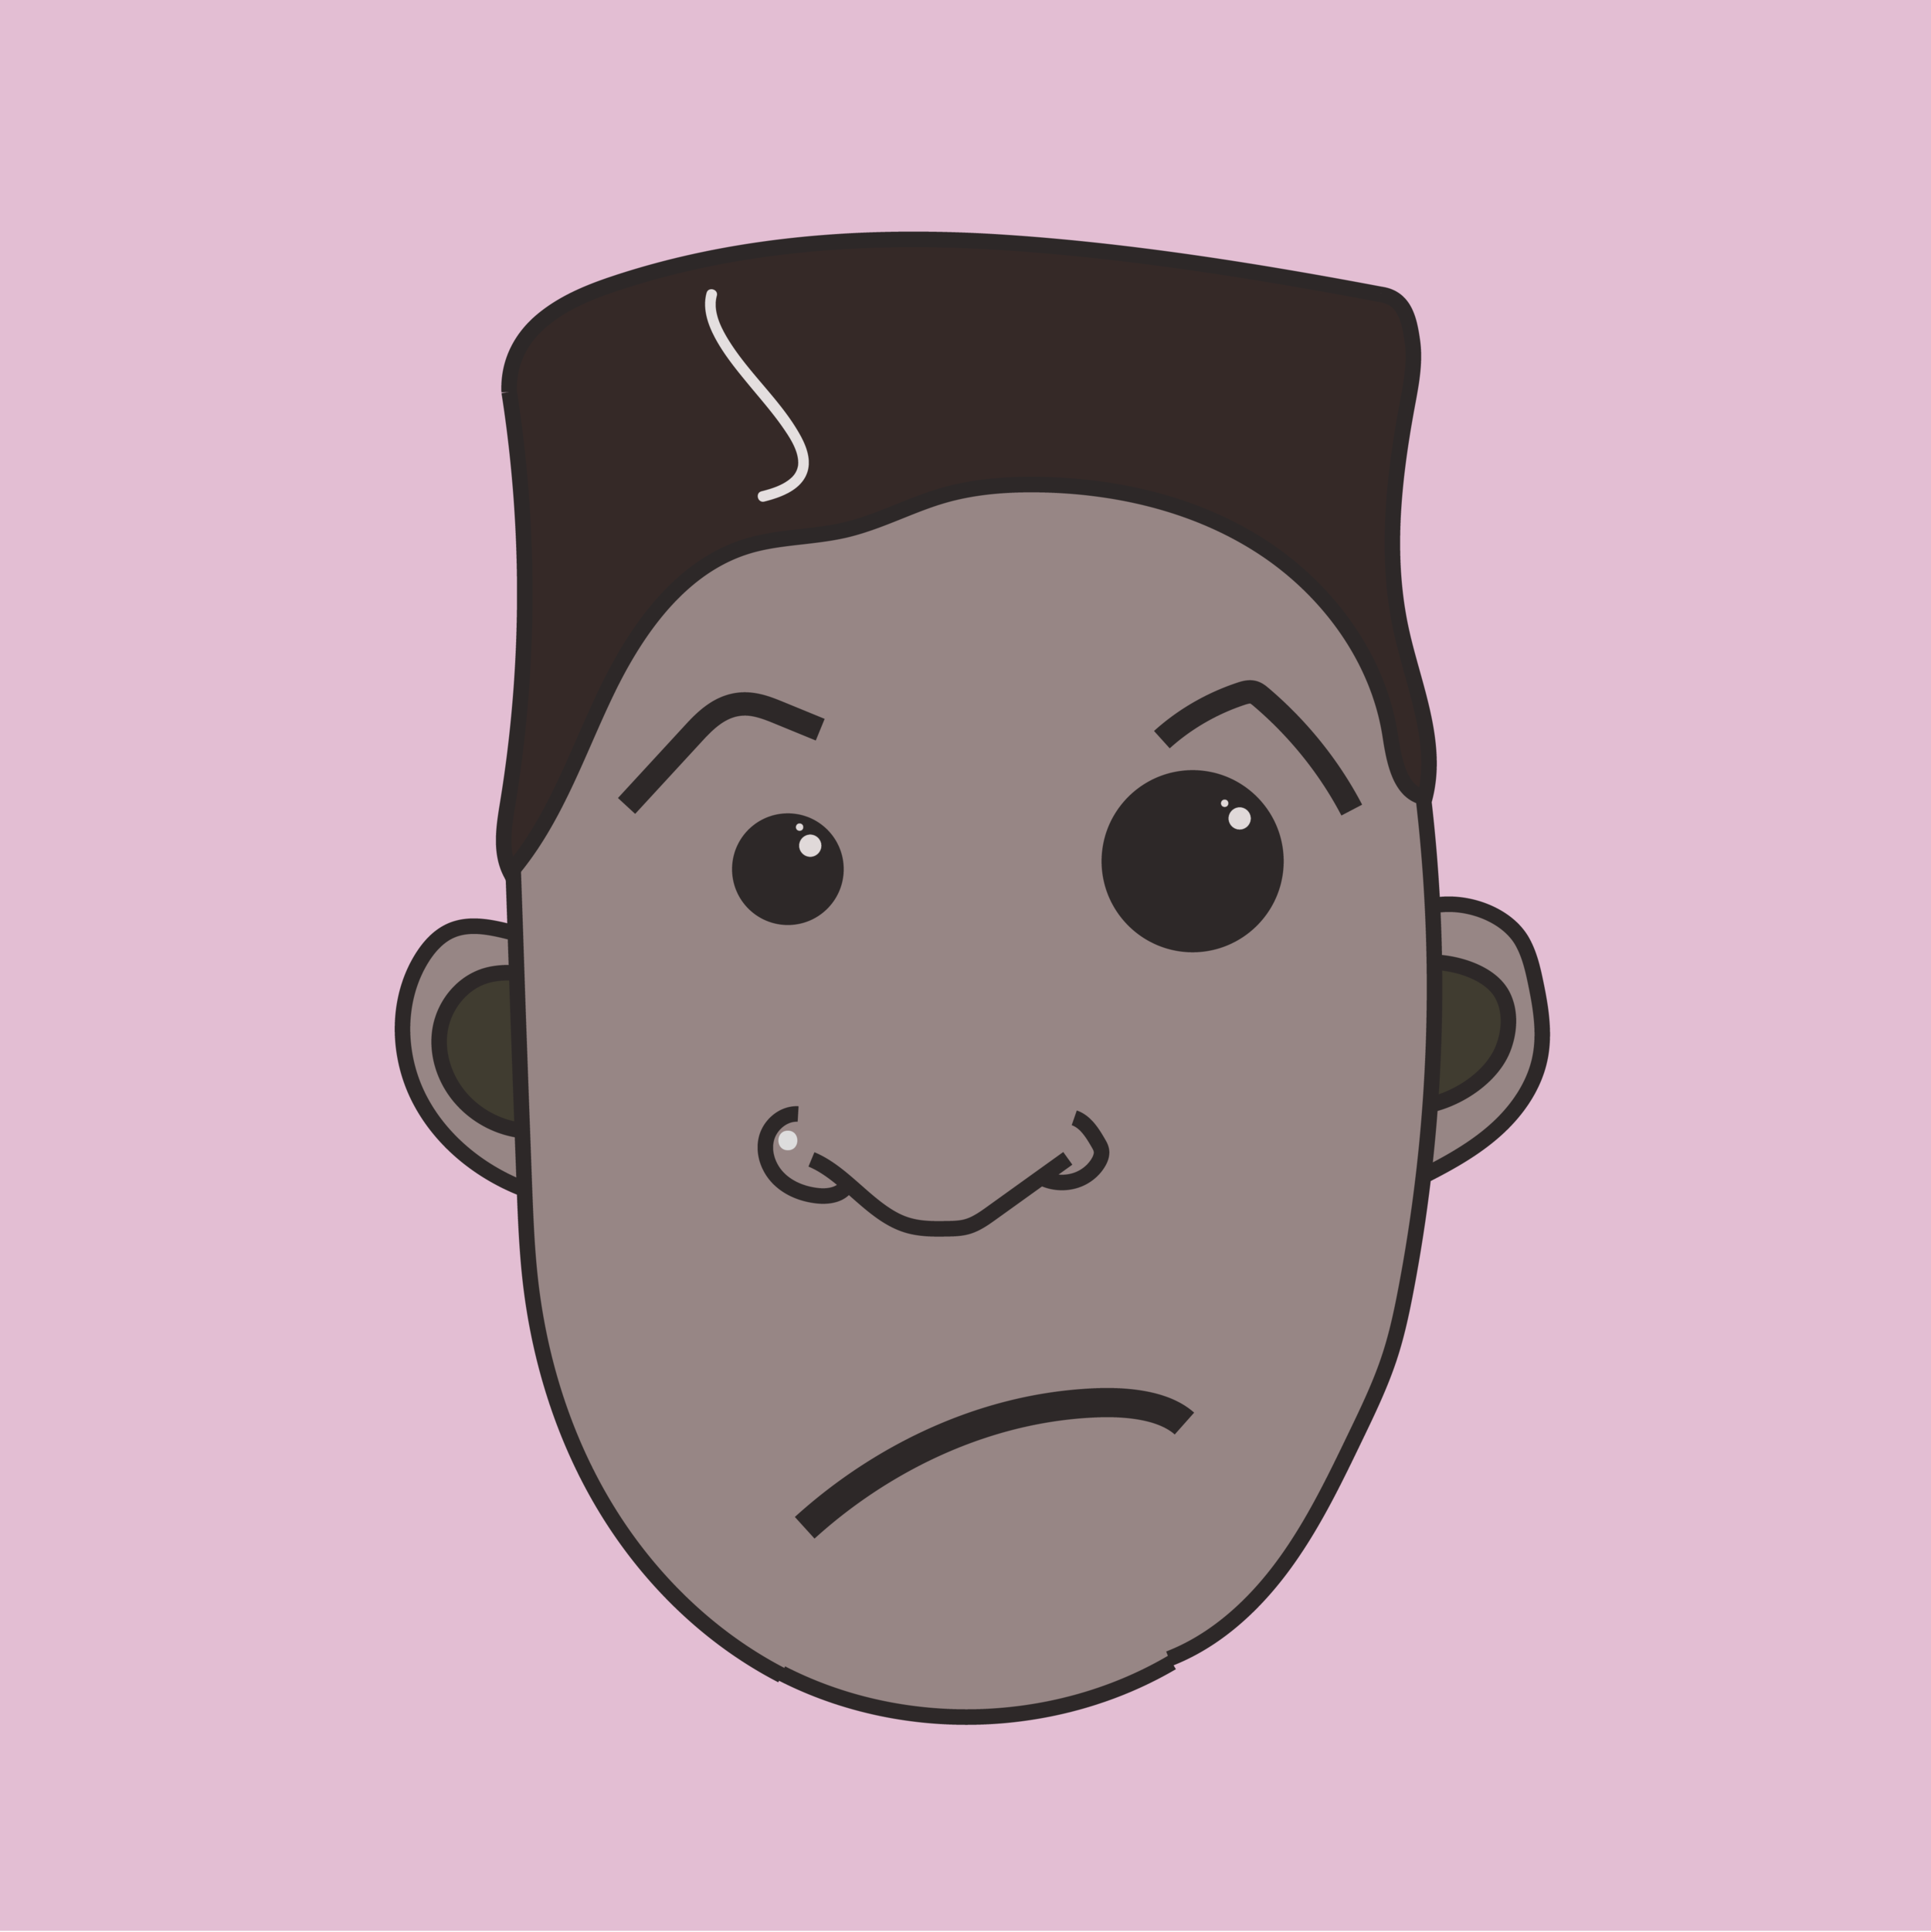 Frowning Fred  2018 Digital illustration 8000 px x 8000 px  More information